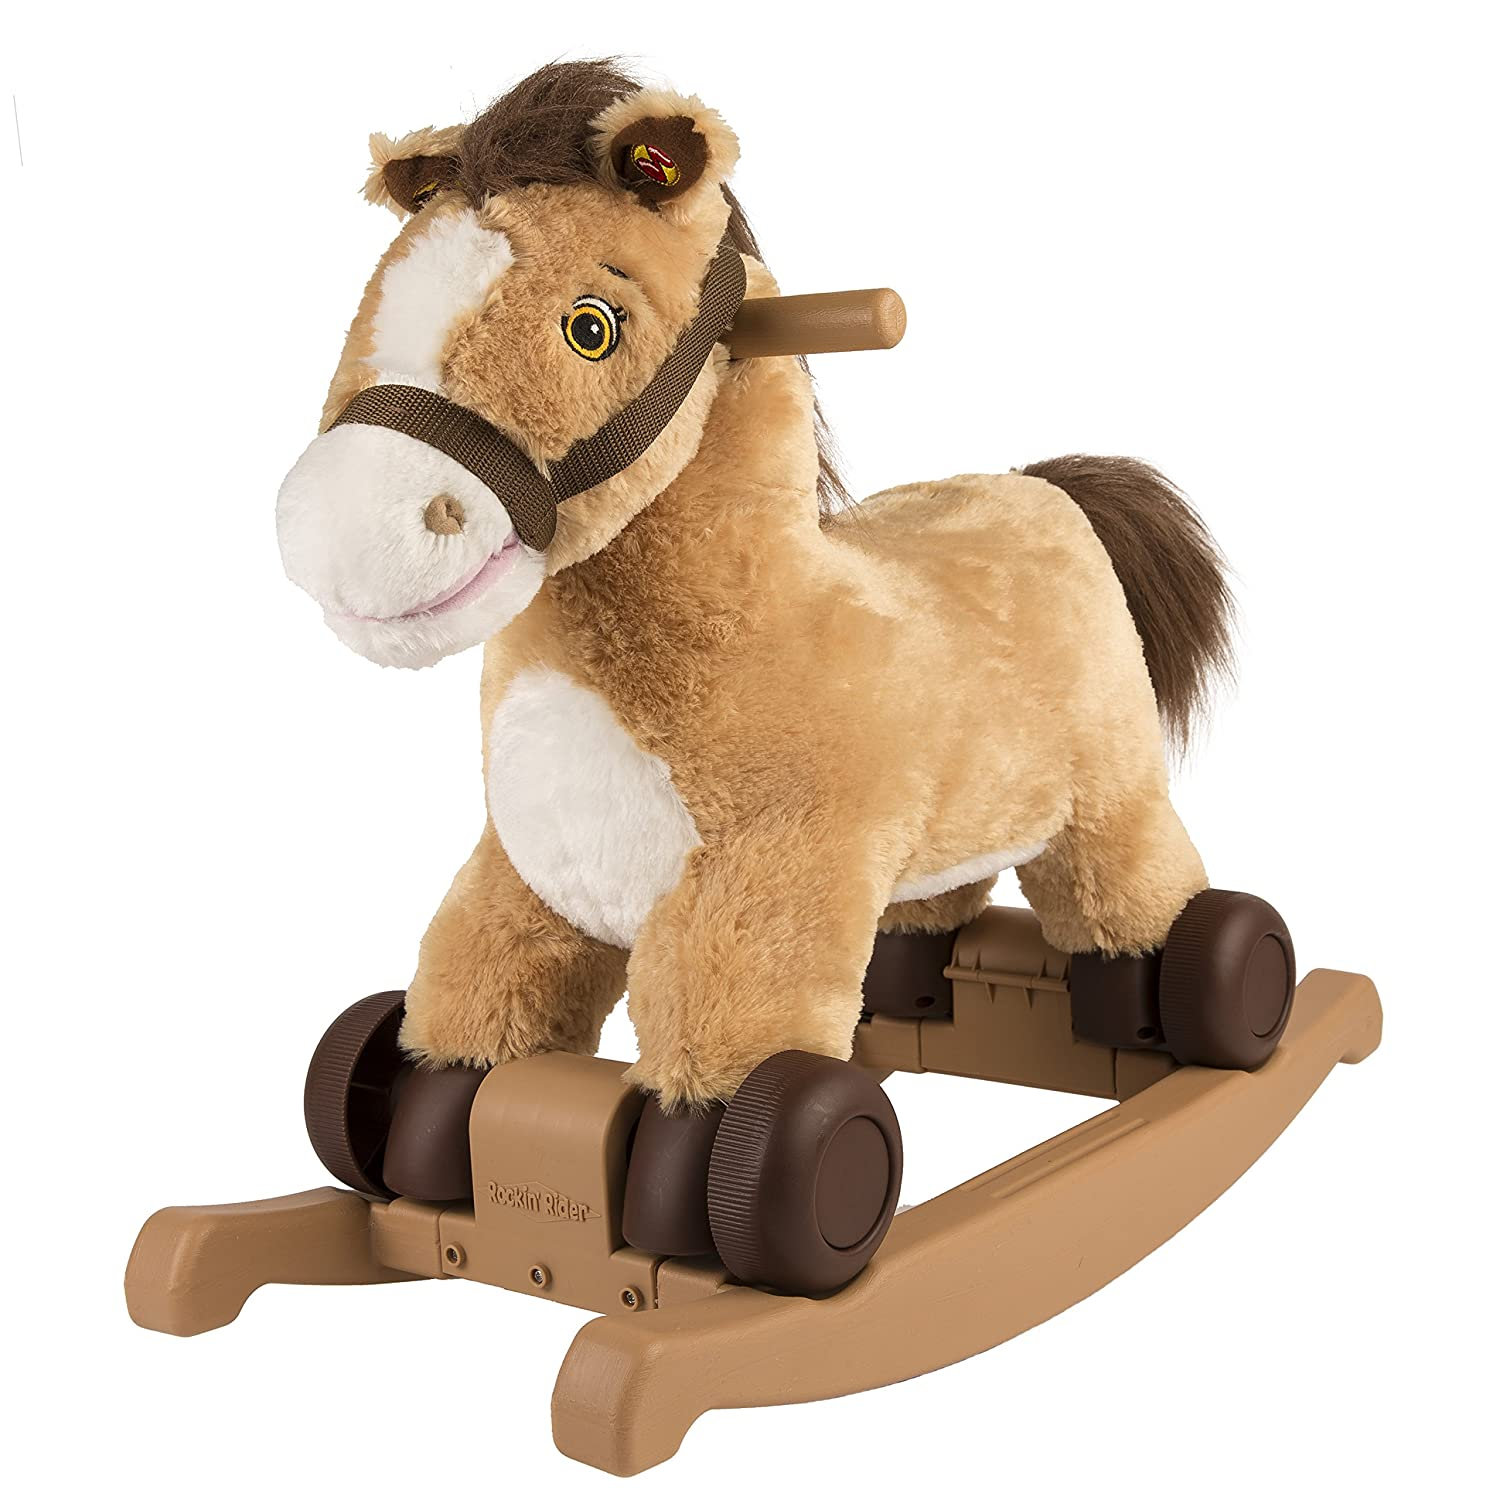 Top 9 Best Rocking Horses Toy Reviews in 2020 1